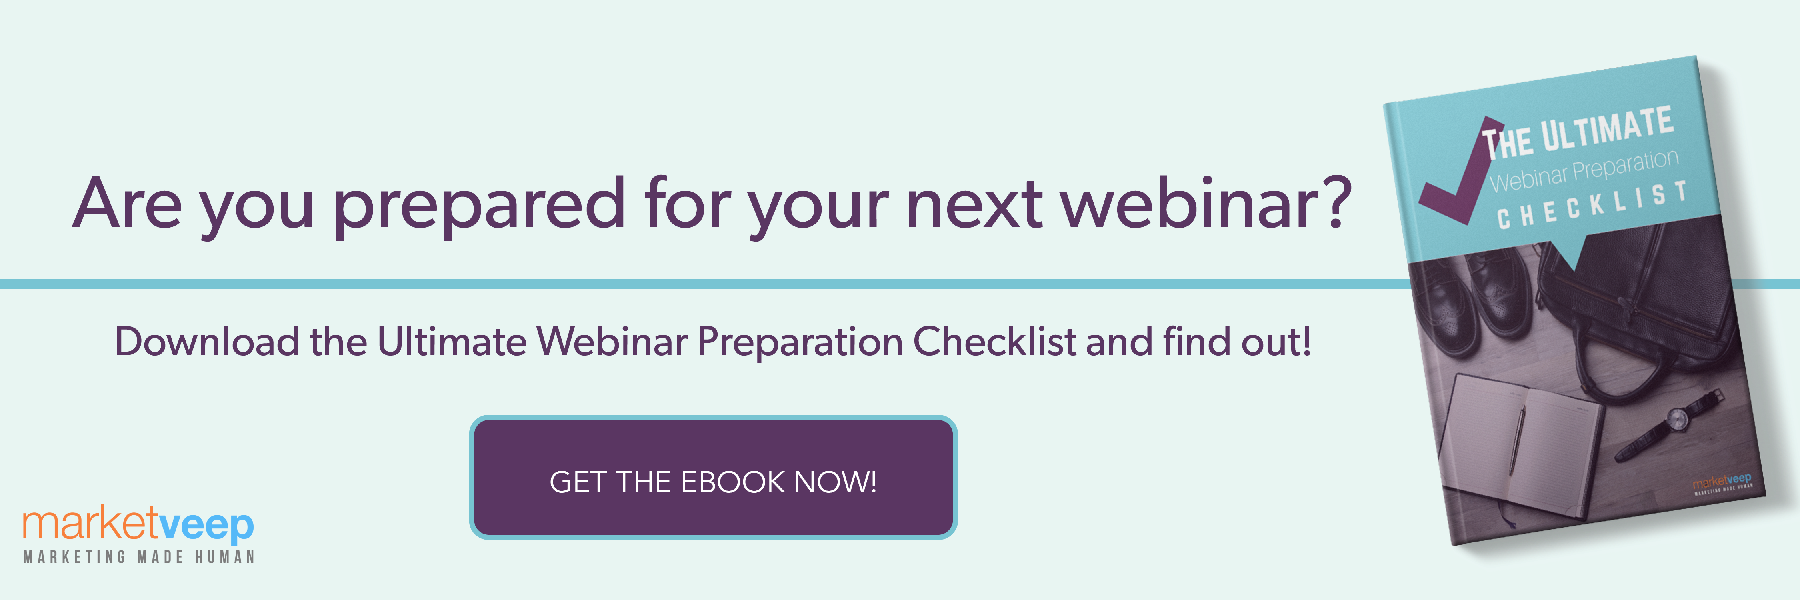 The Ultimate Webinar Preparation Checklist